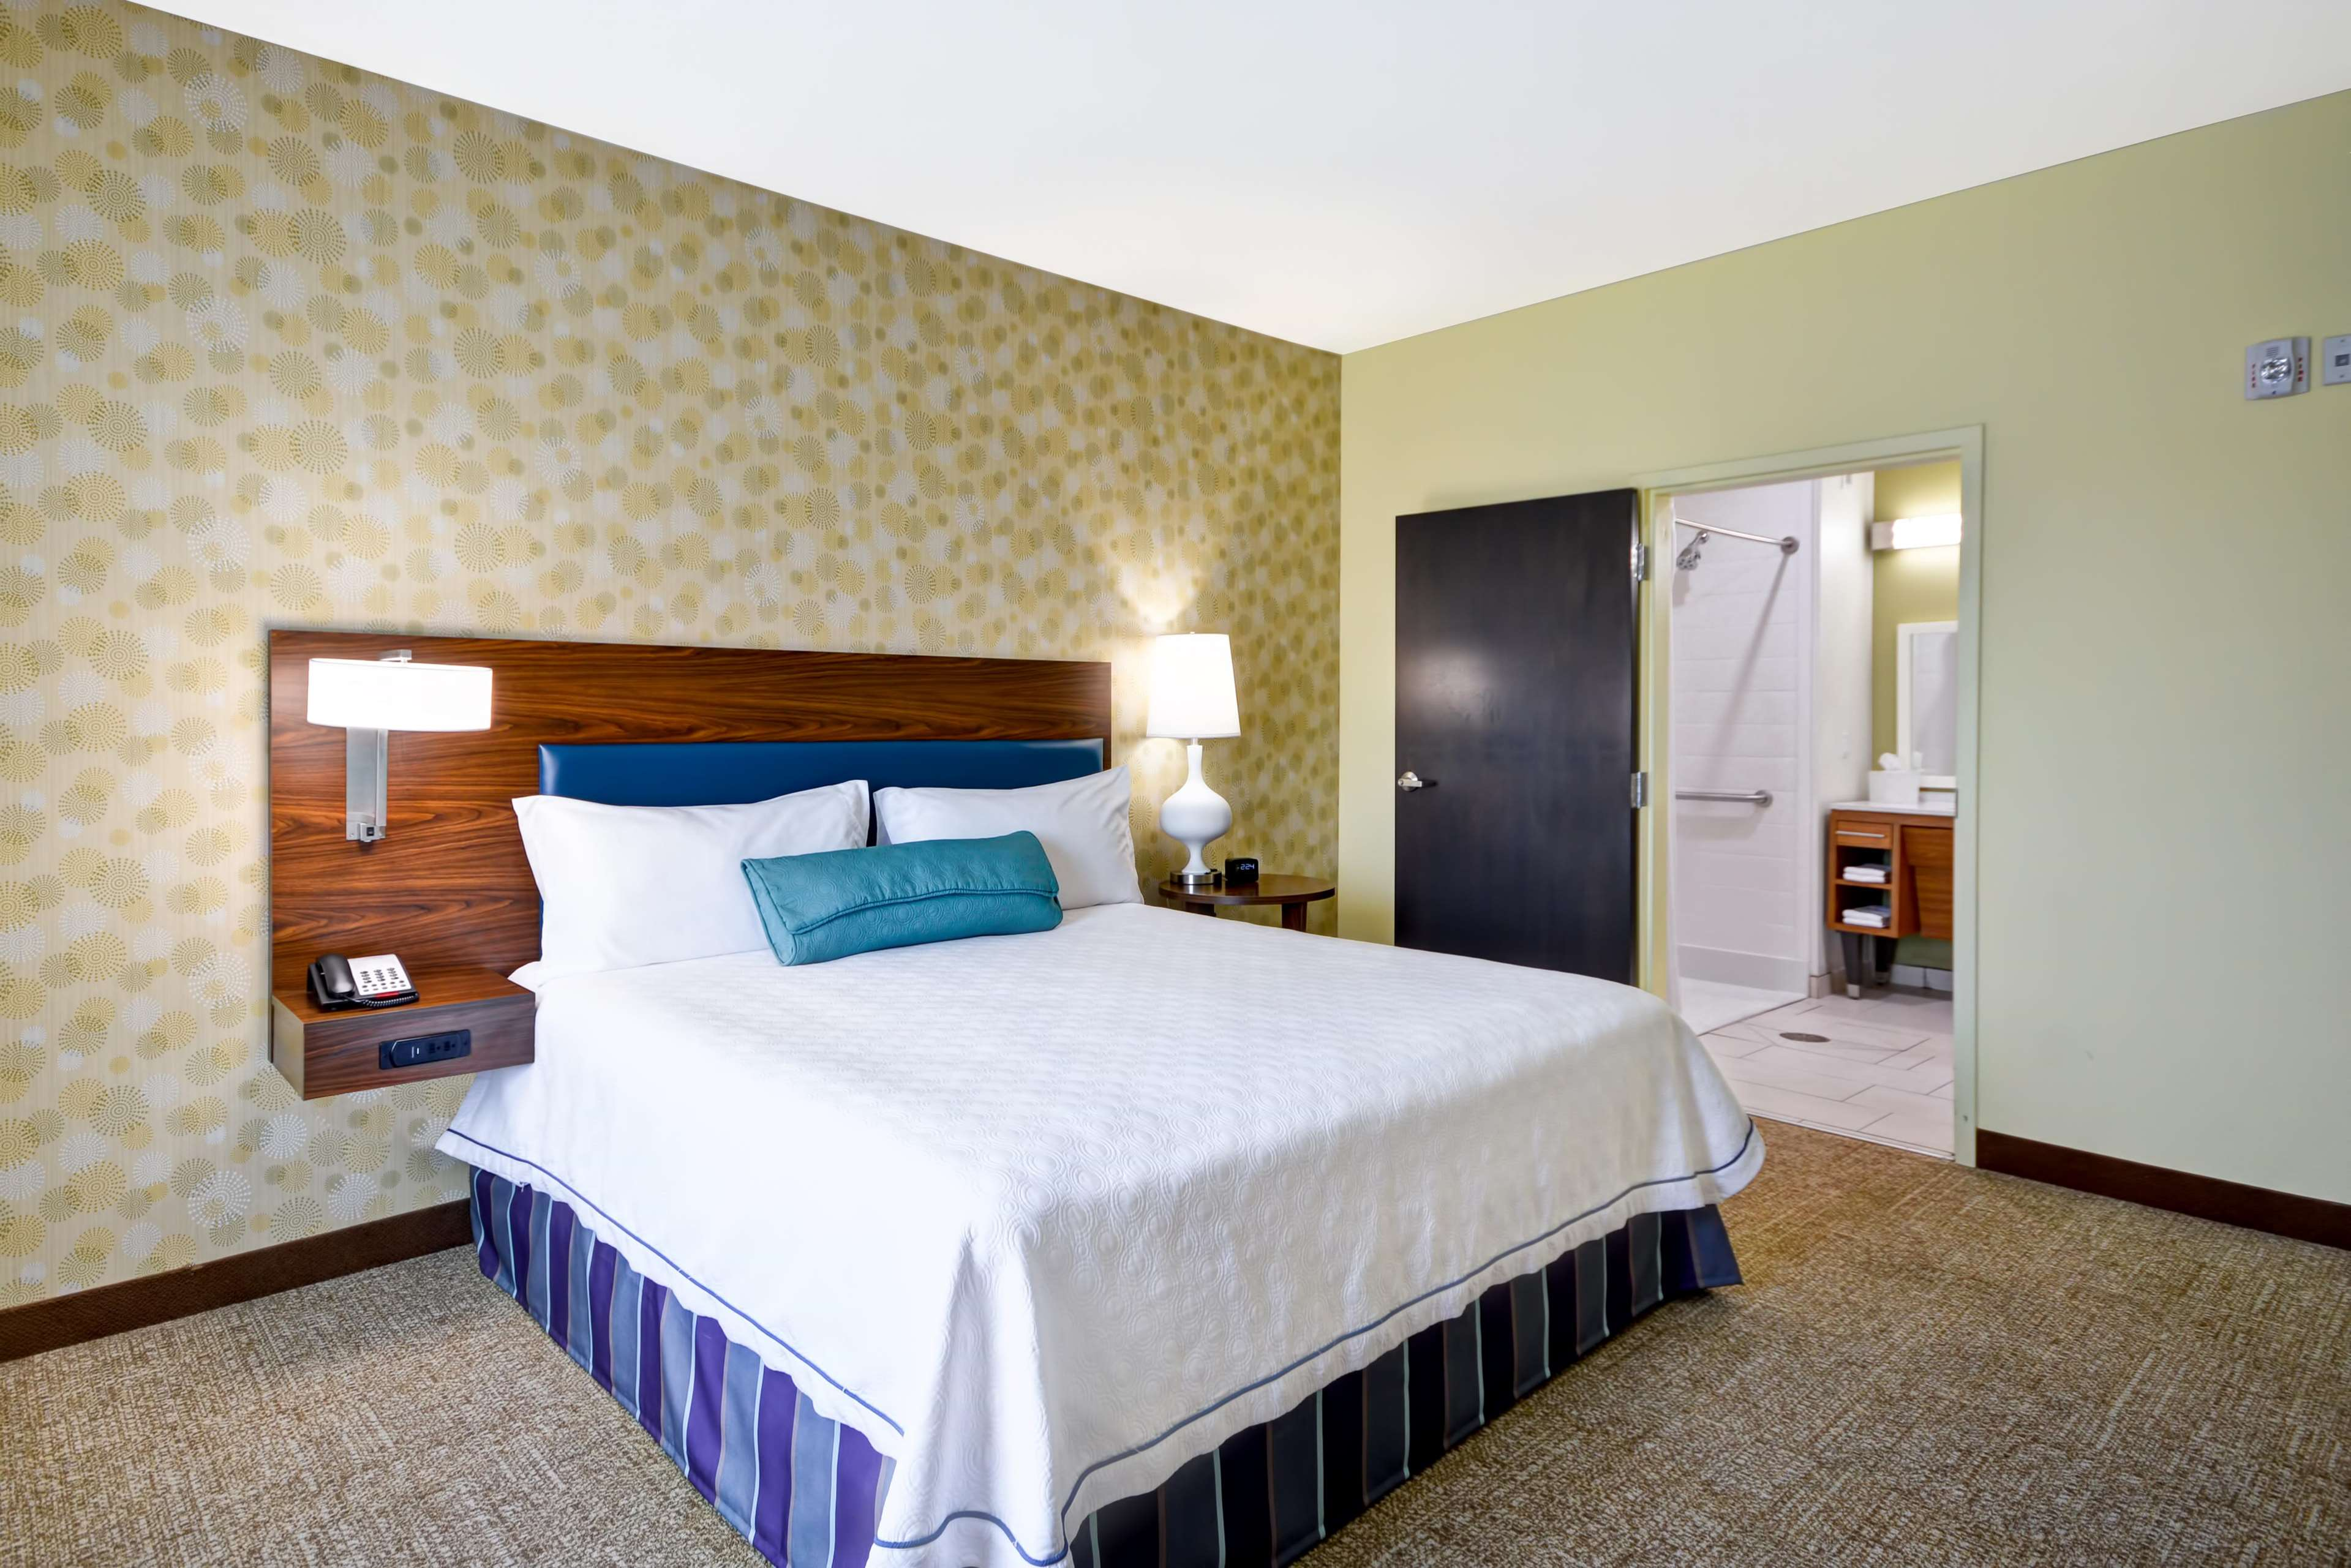 Home2 Suites by Hilton Fort Worth Southwest Cityview image 18